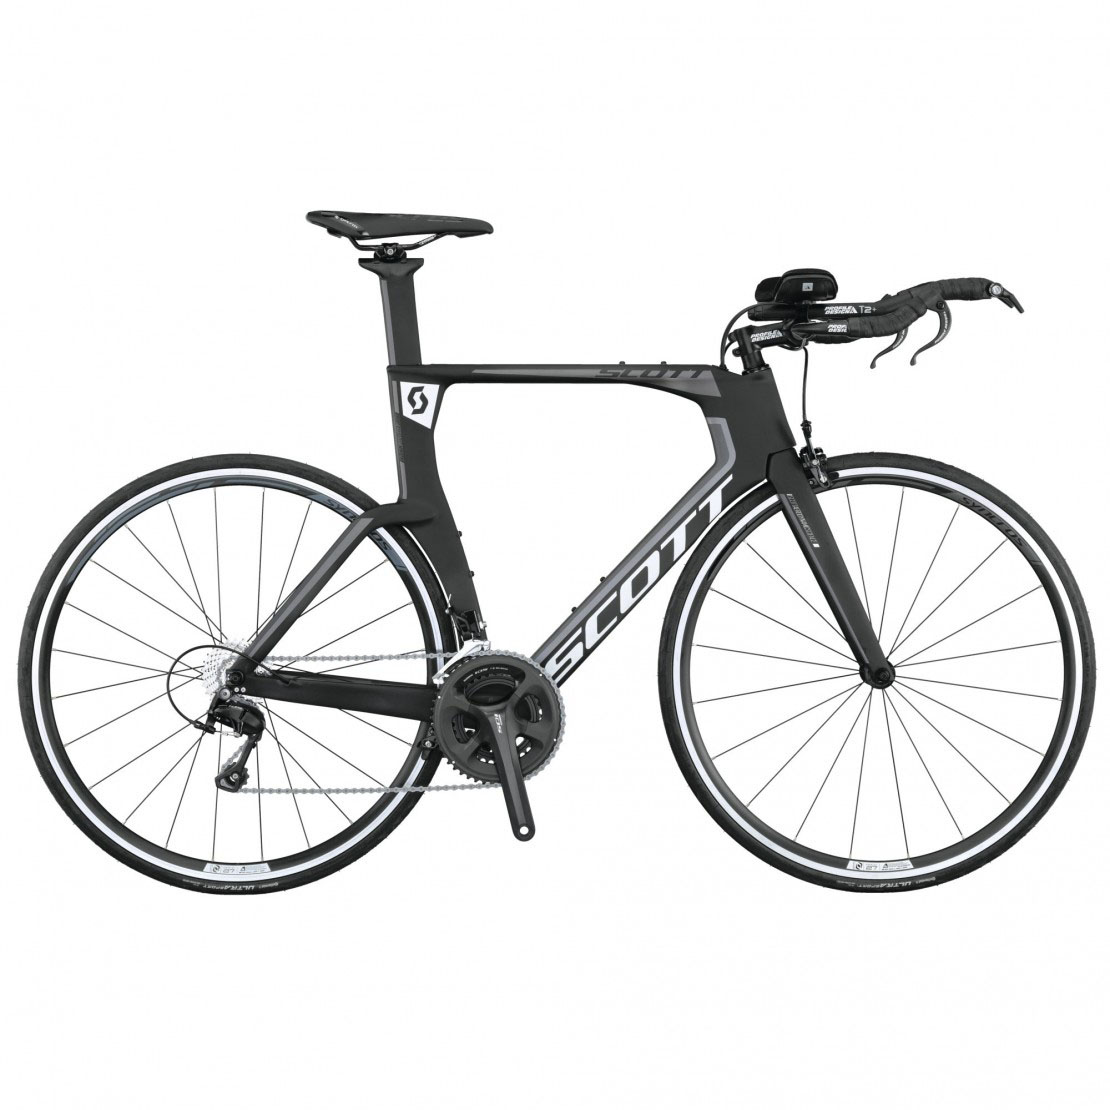 Plasma 20 2015 - Triathlon Road Race Bike